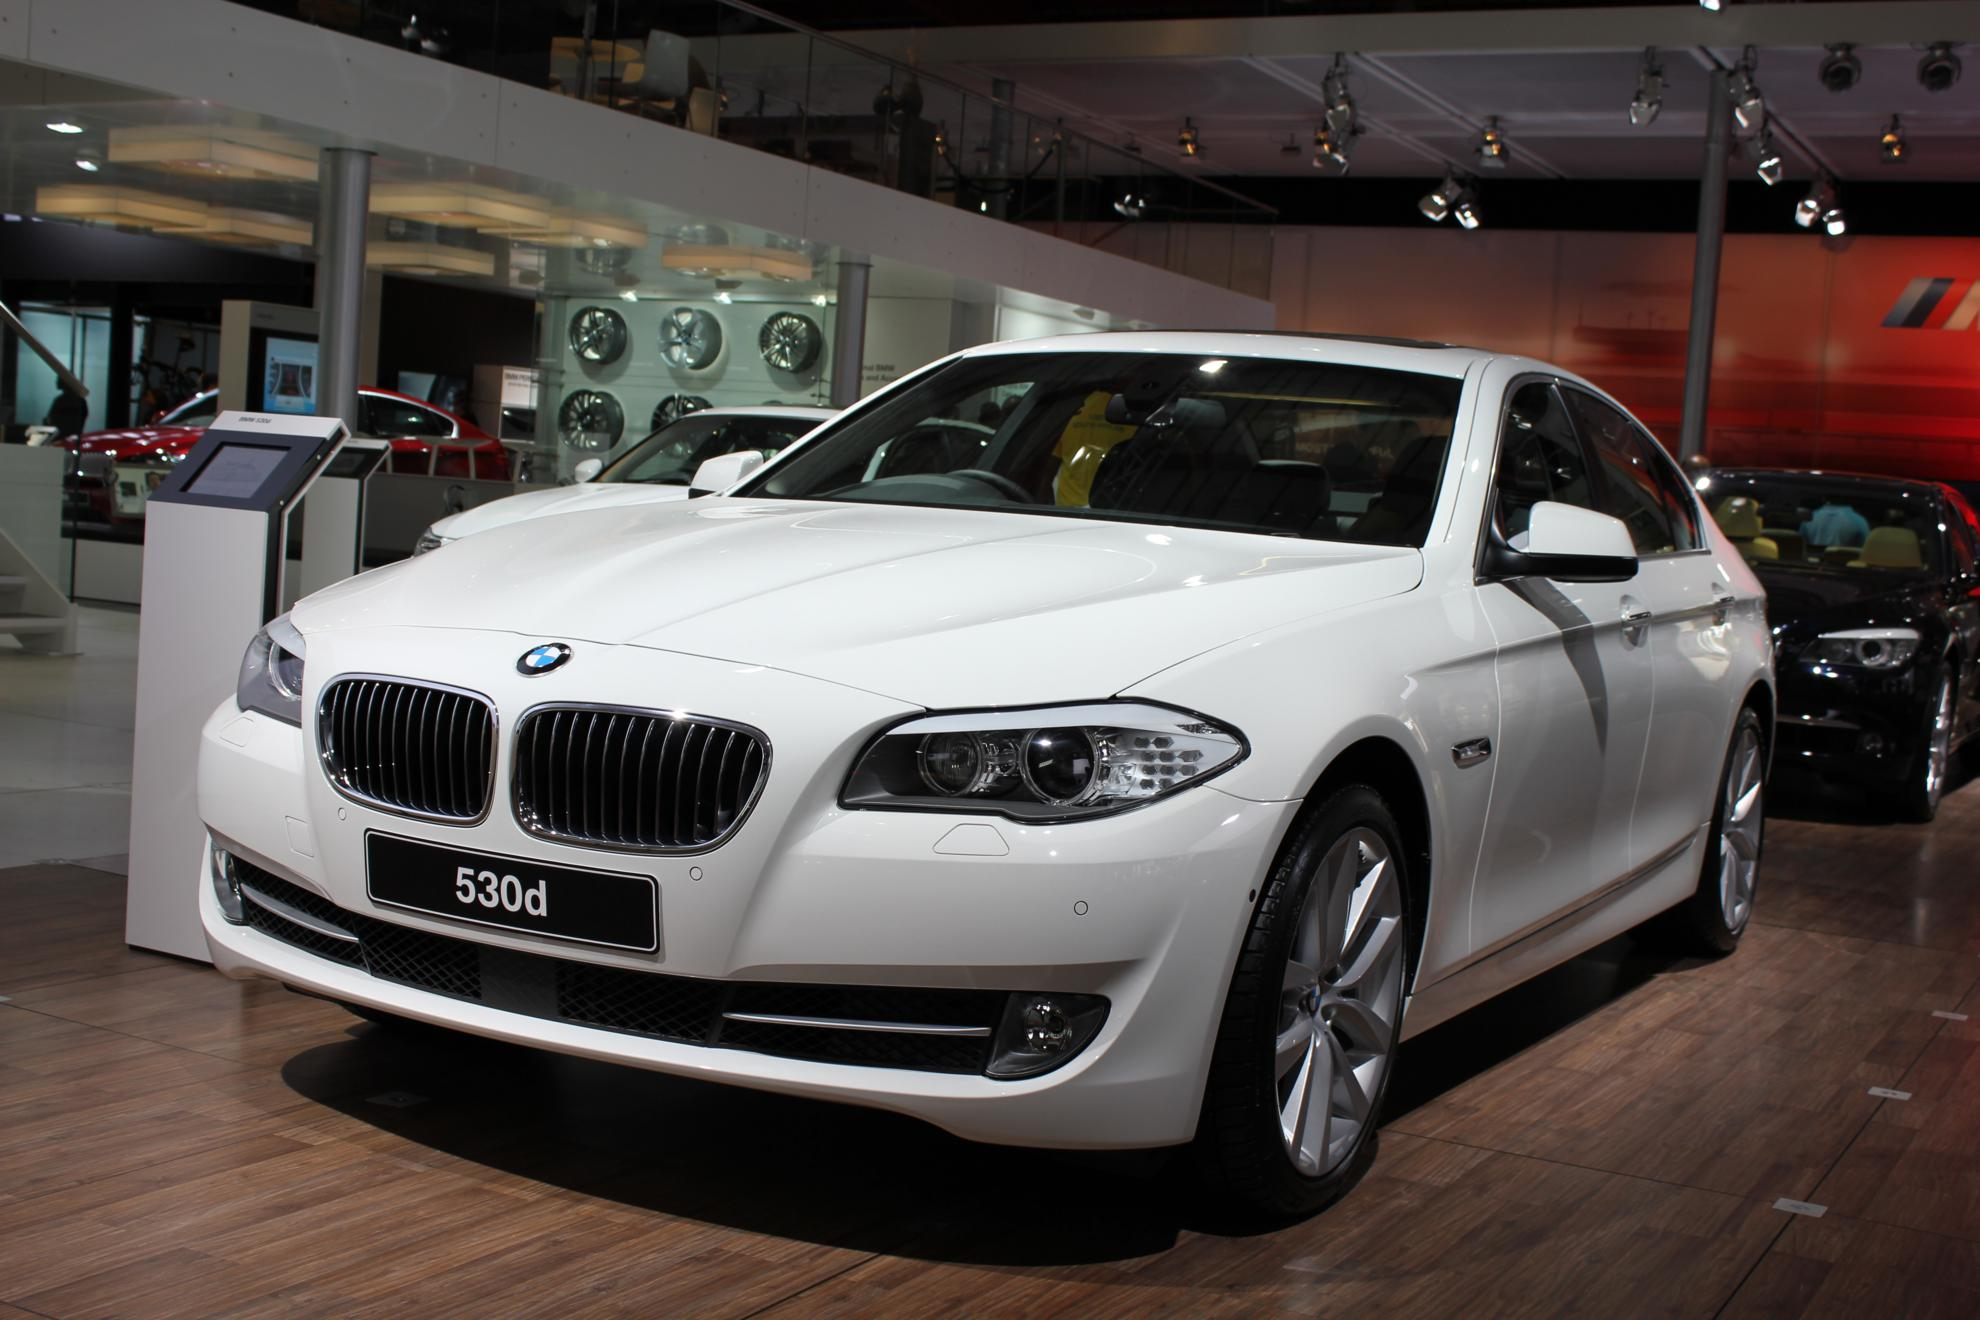 bmw 530d 2014 white images galleries with a bite. Black Bedroom Furniture Sets. Home Design Ideas